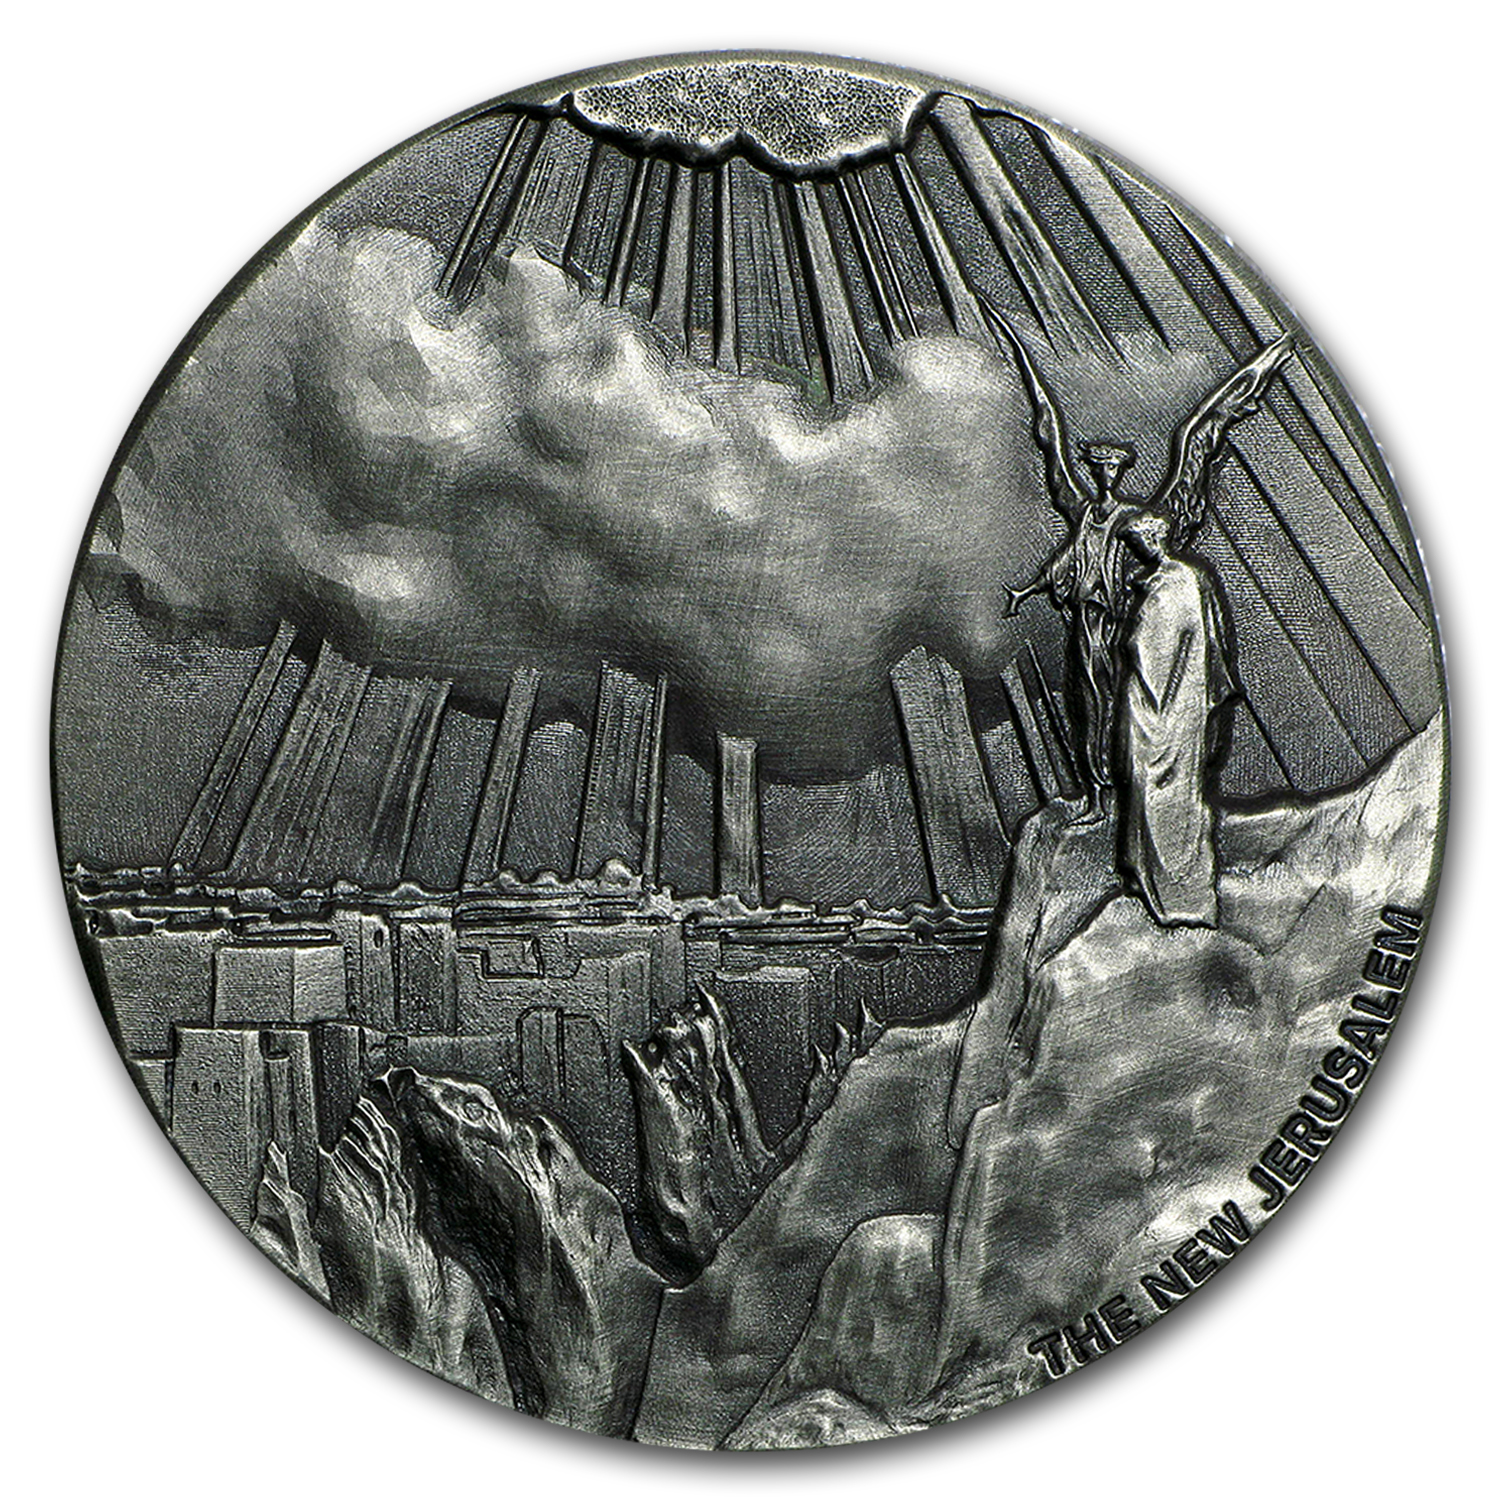 2 oz Silver Coin - Biblical Series (New Jerusalem)